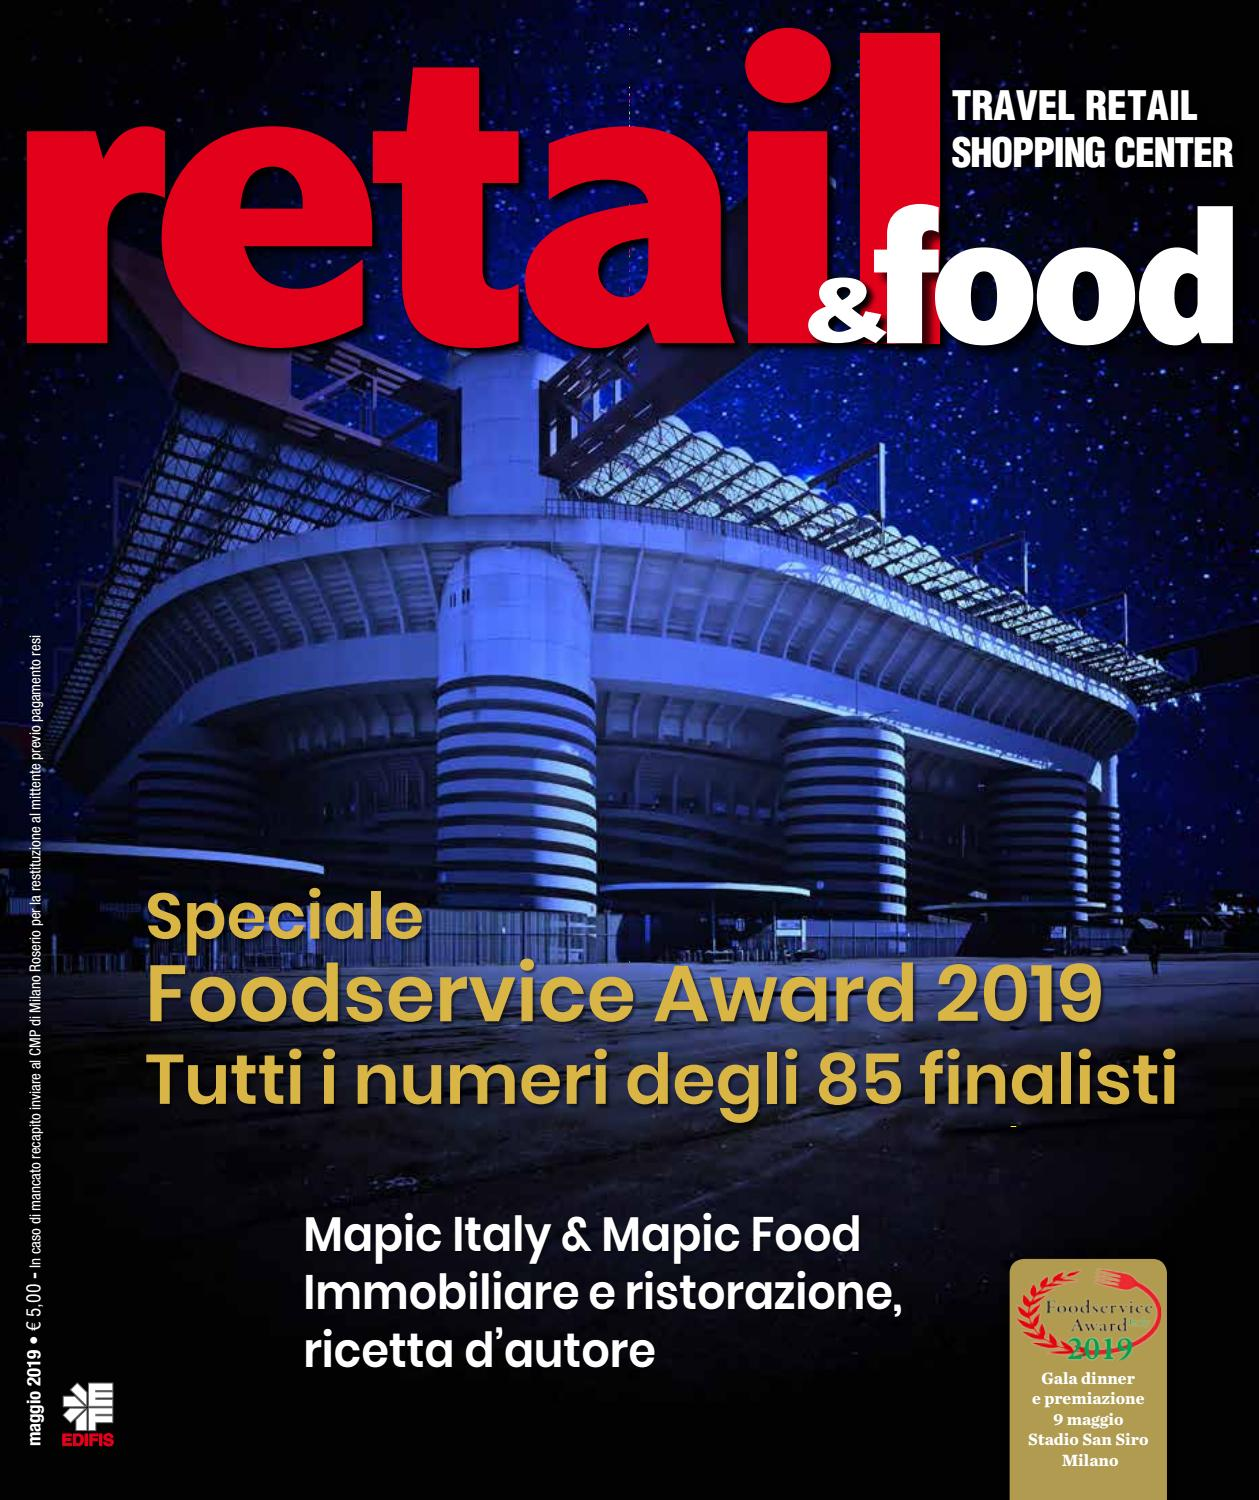 retail&food 05 2019 by Edifis issuu